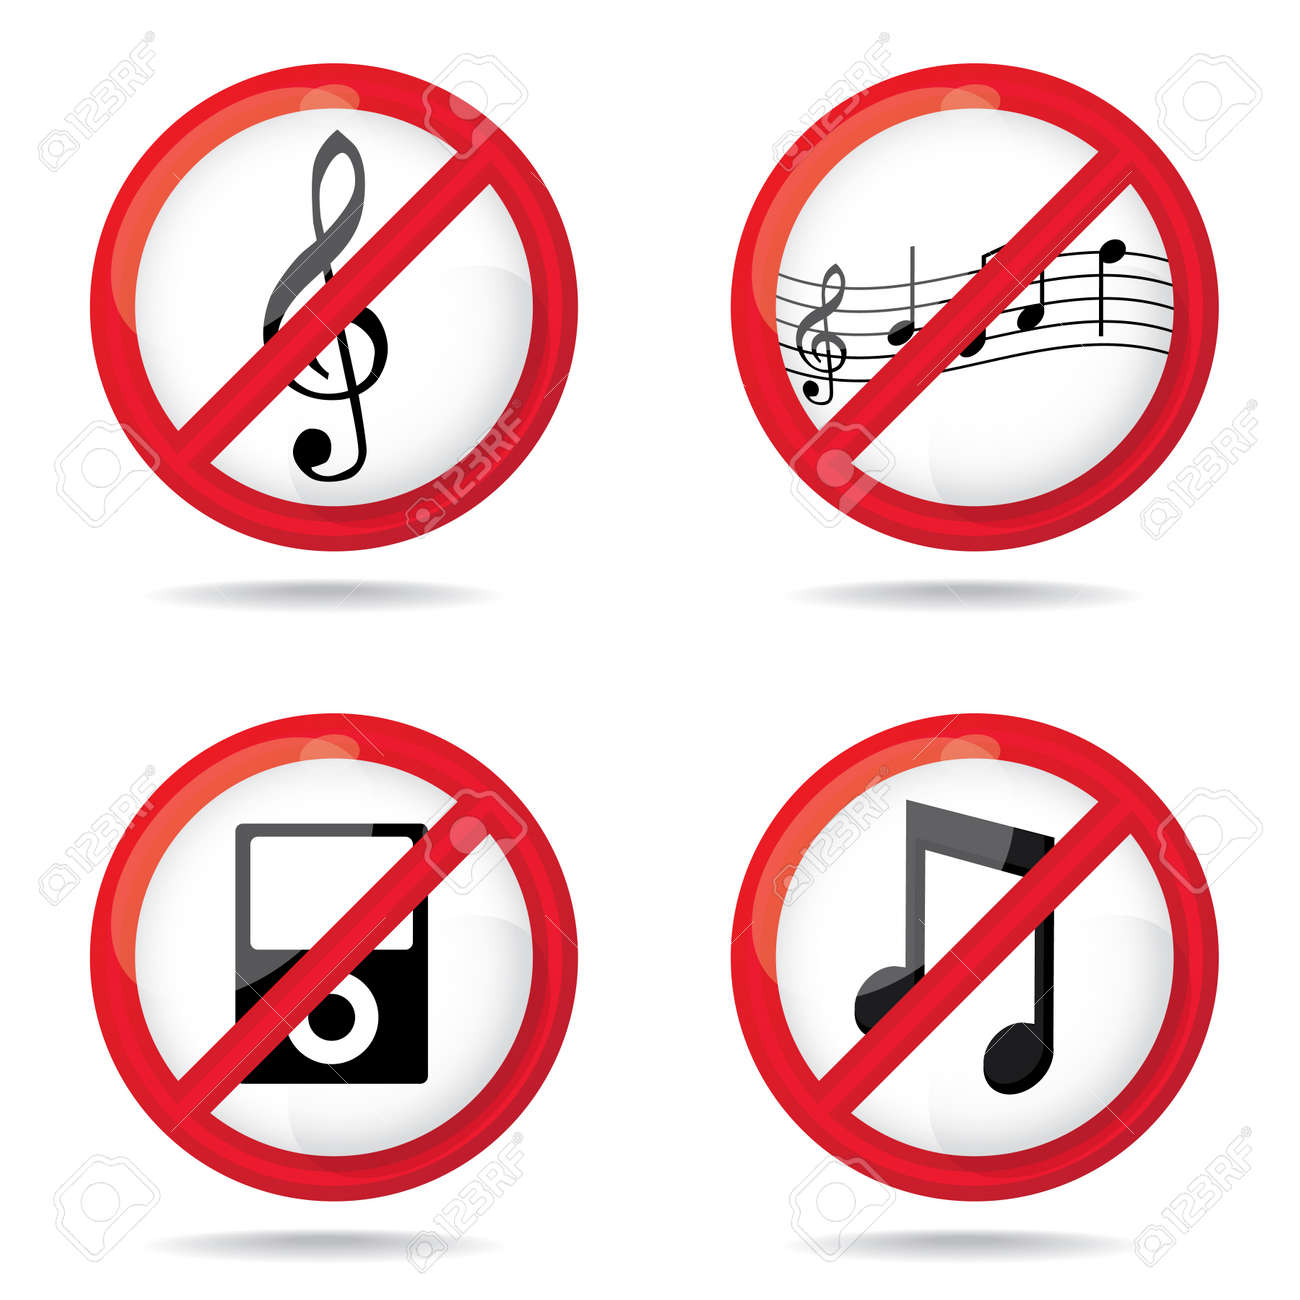 Set of not allowed music symbols illustration royalty free set of not allowed music symbols illustration stock vector 16857765 buycottarizona Gallery